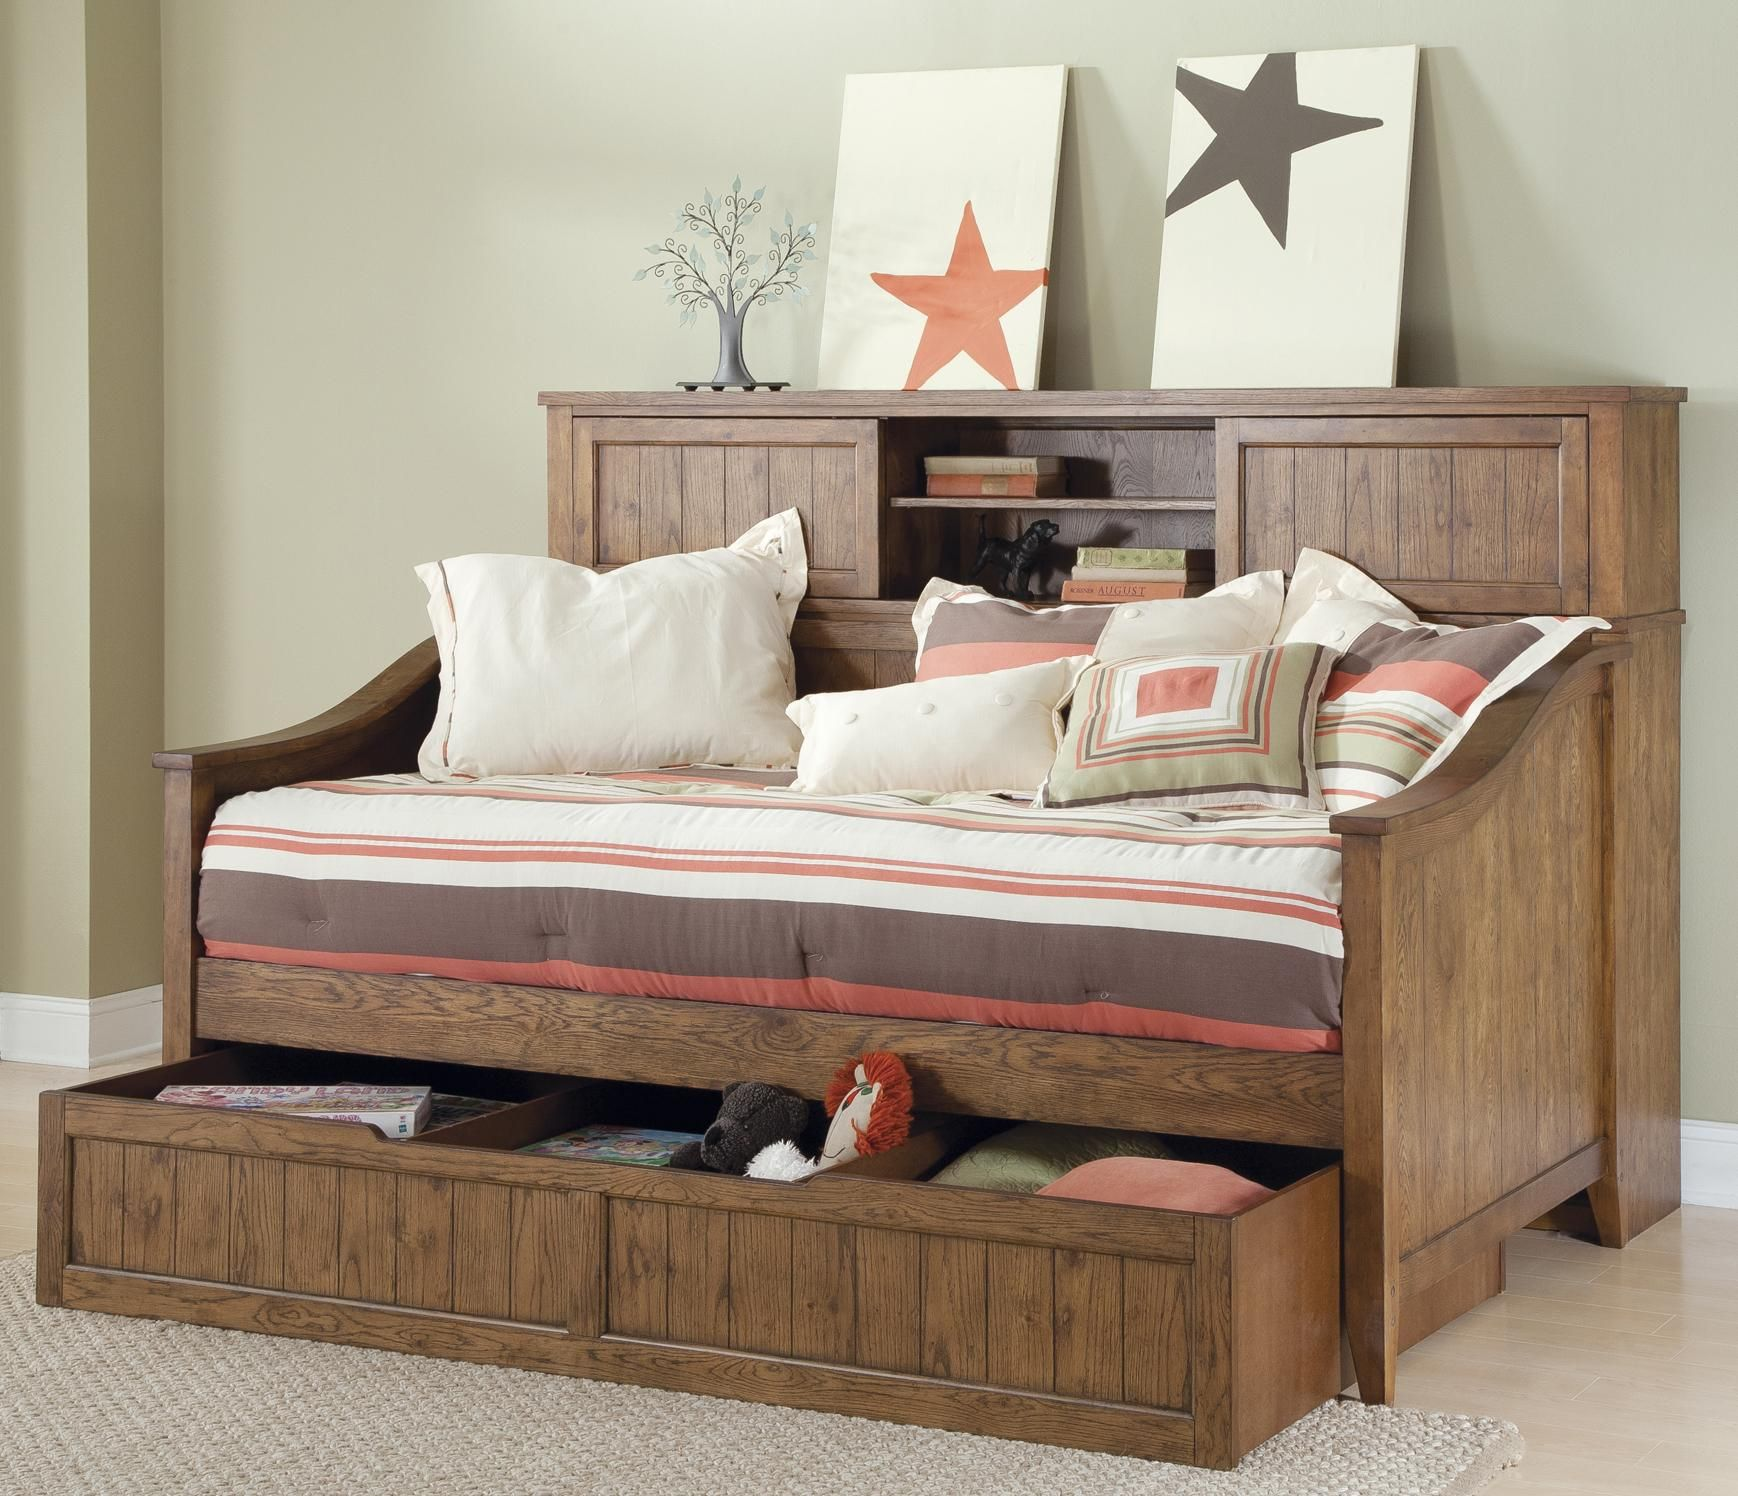 Awesome perfect queen trundle bed set 25 in small home decoration ideas with queen trundle bed